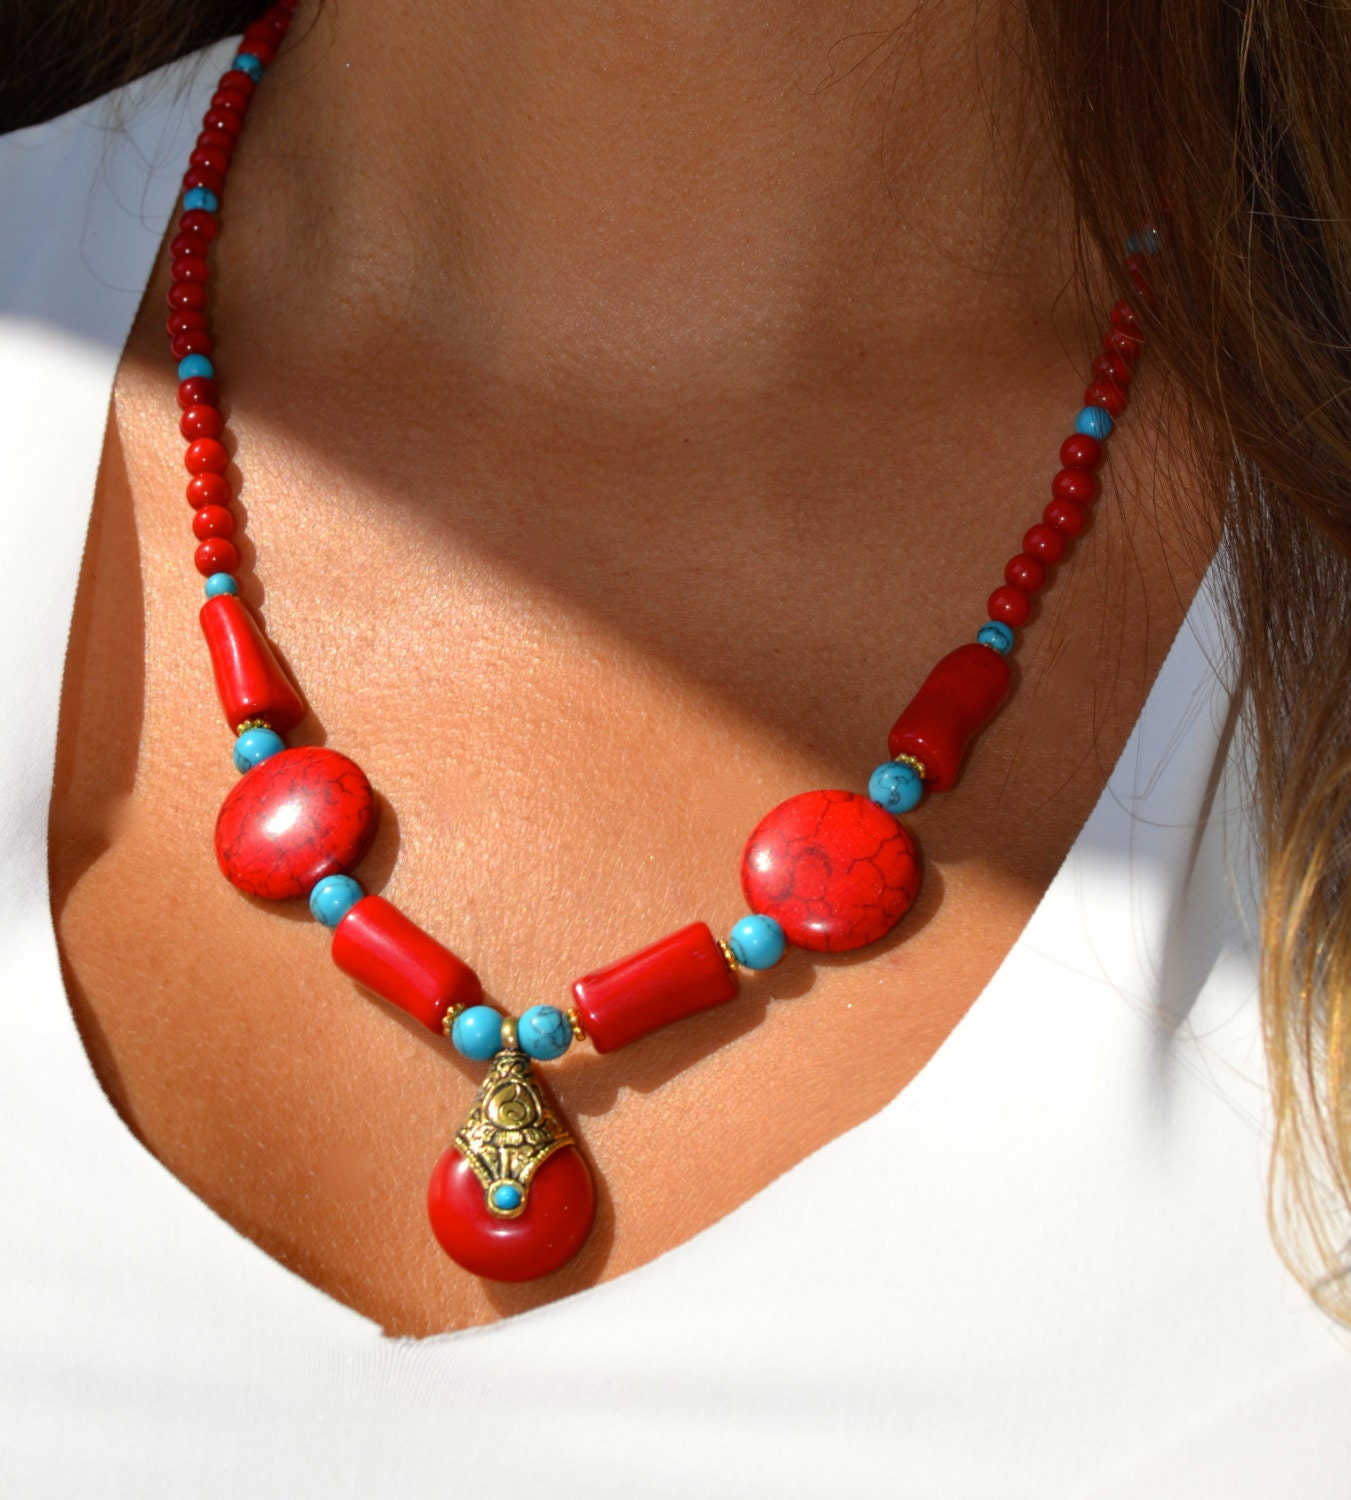 Necklace Beads: Boho Style Chunky Beaded Necklace With By Uniquebeadingbyme